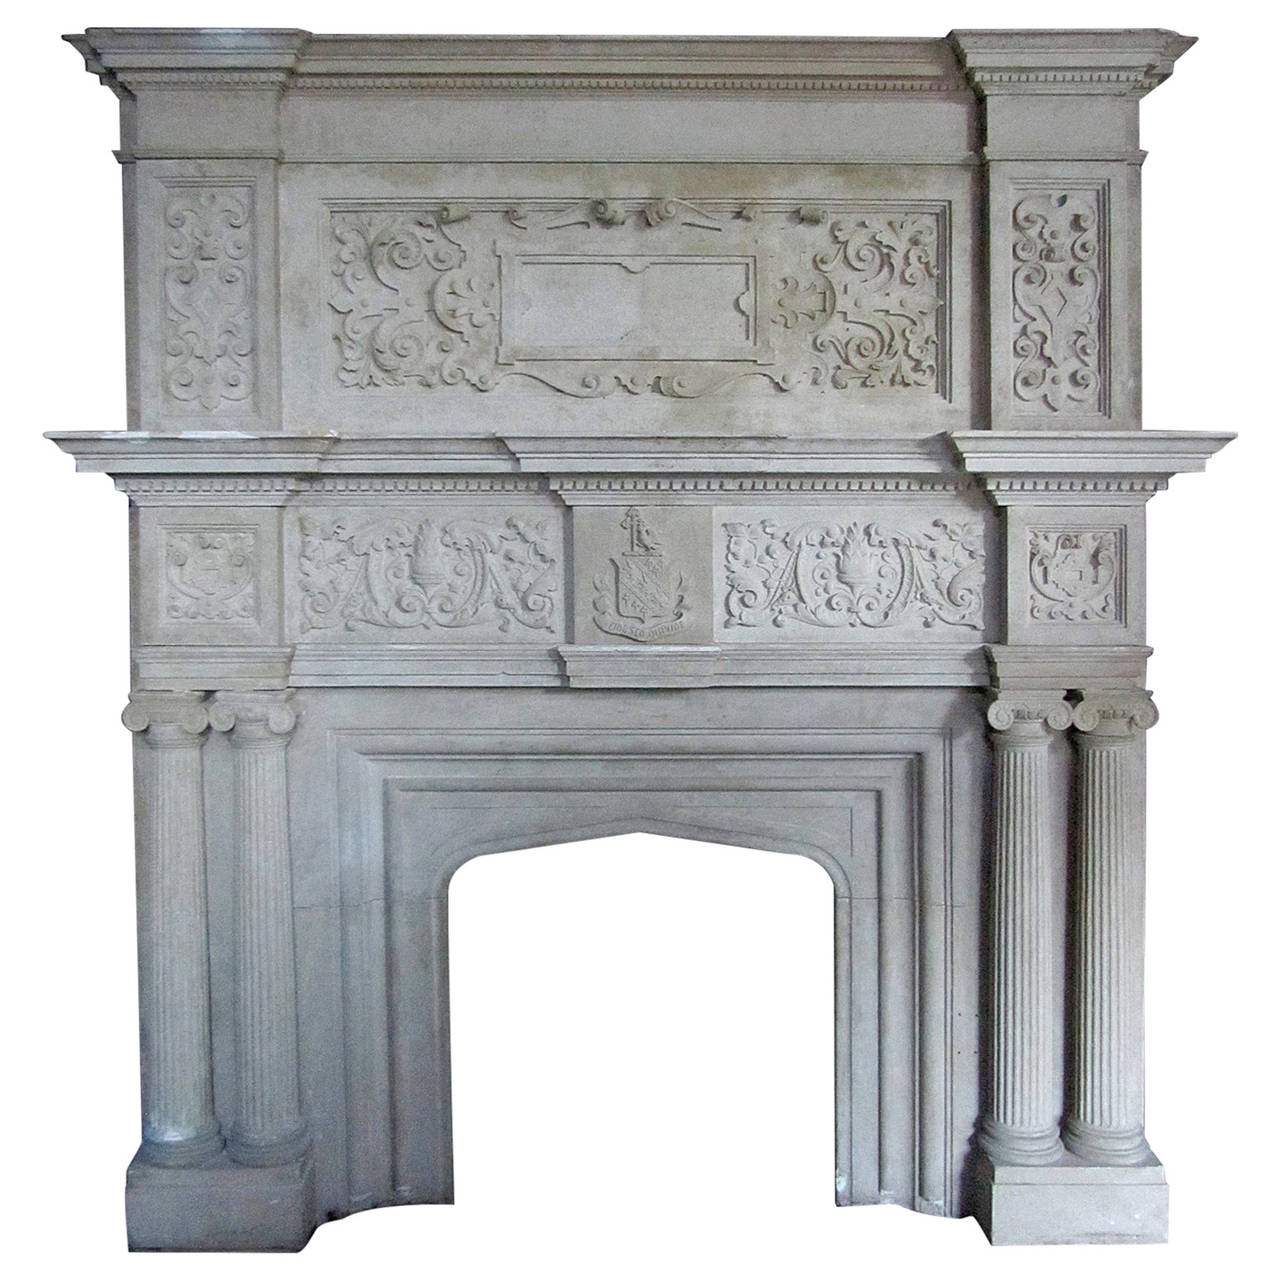 Large Indiana Limestone Tudor Revival Style Fireplace Mantel At 1stdibs